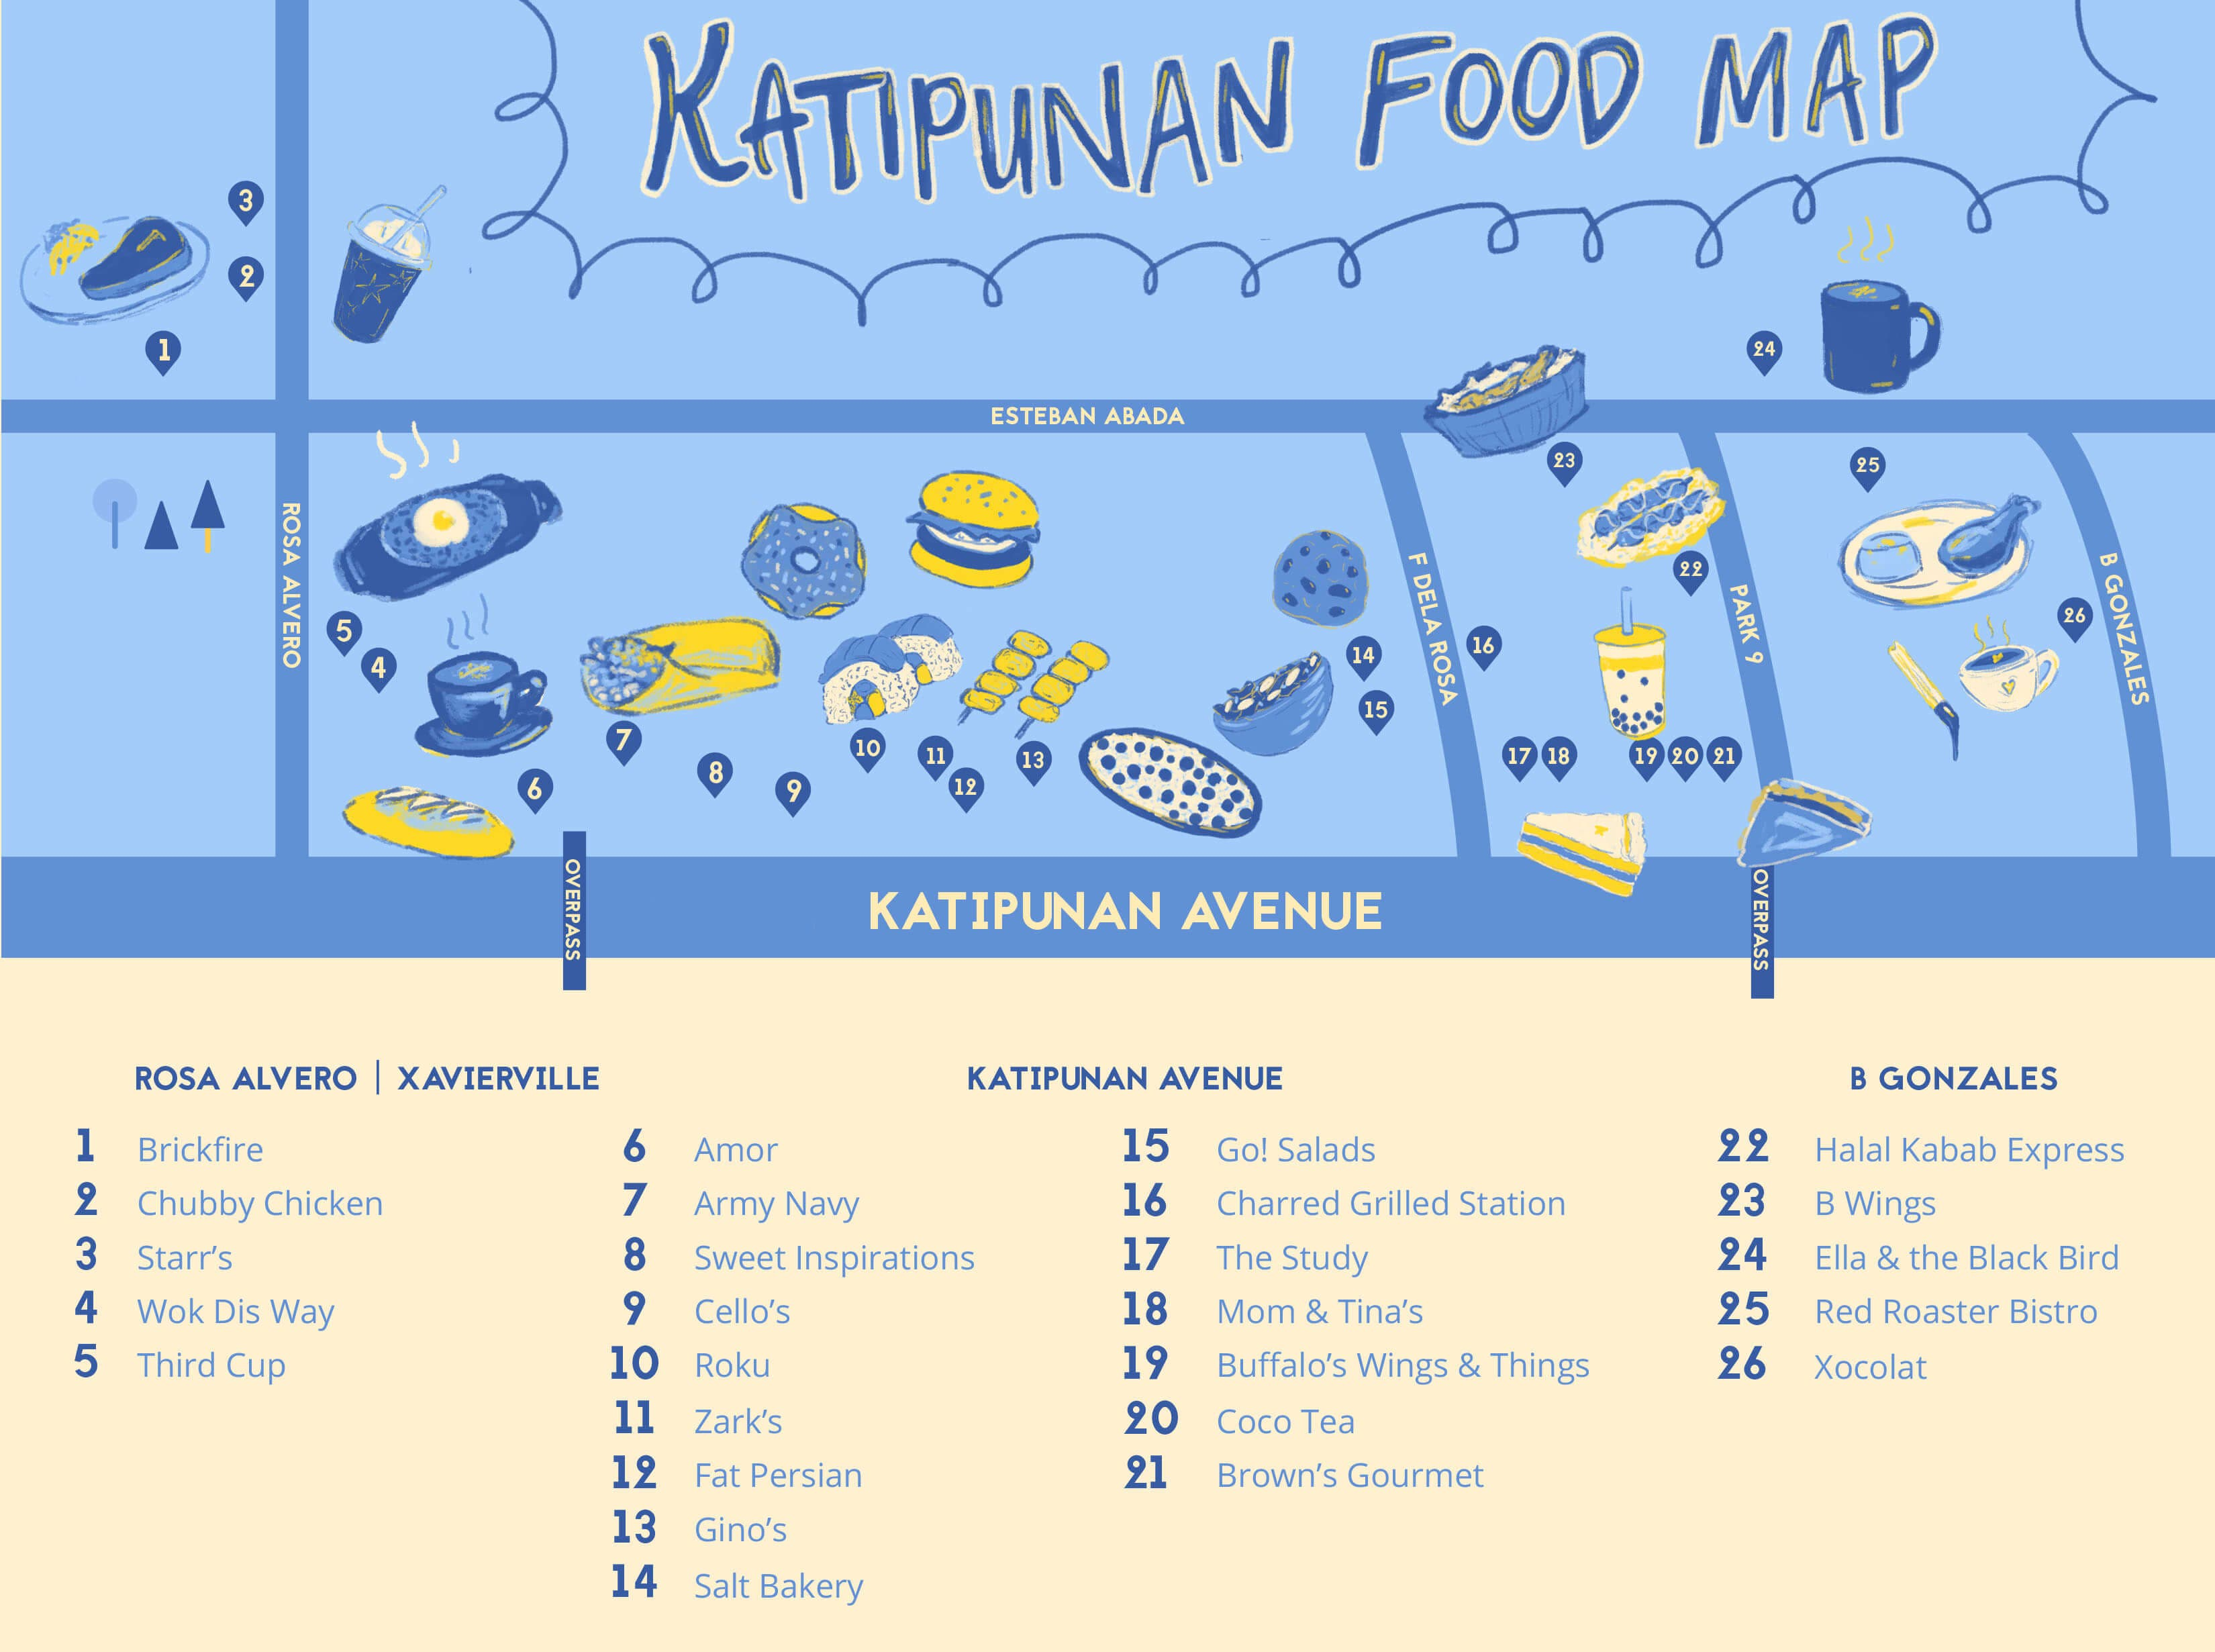 b661c4a1 Katipunan Food Map: 26 Restaurants Sure to Satisfy your Hunger in ...